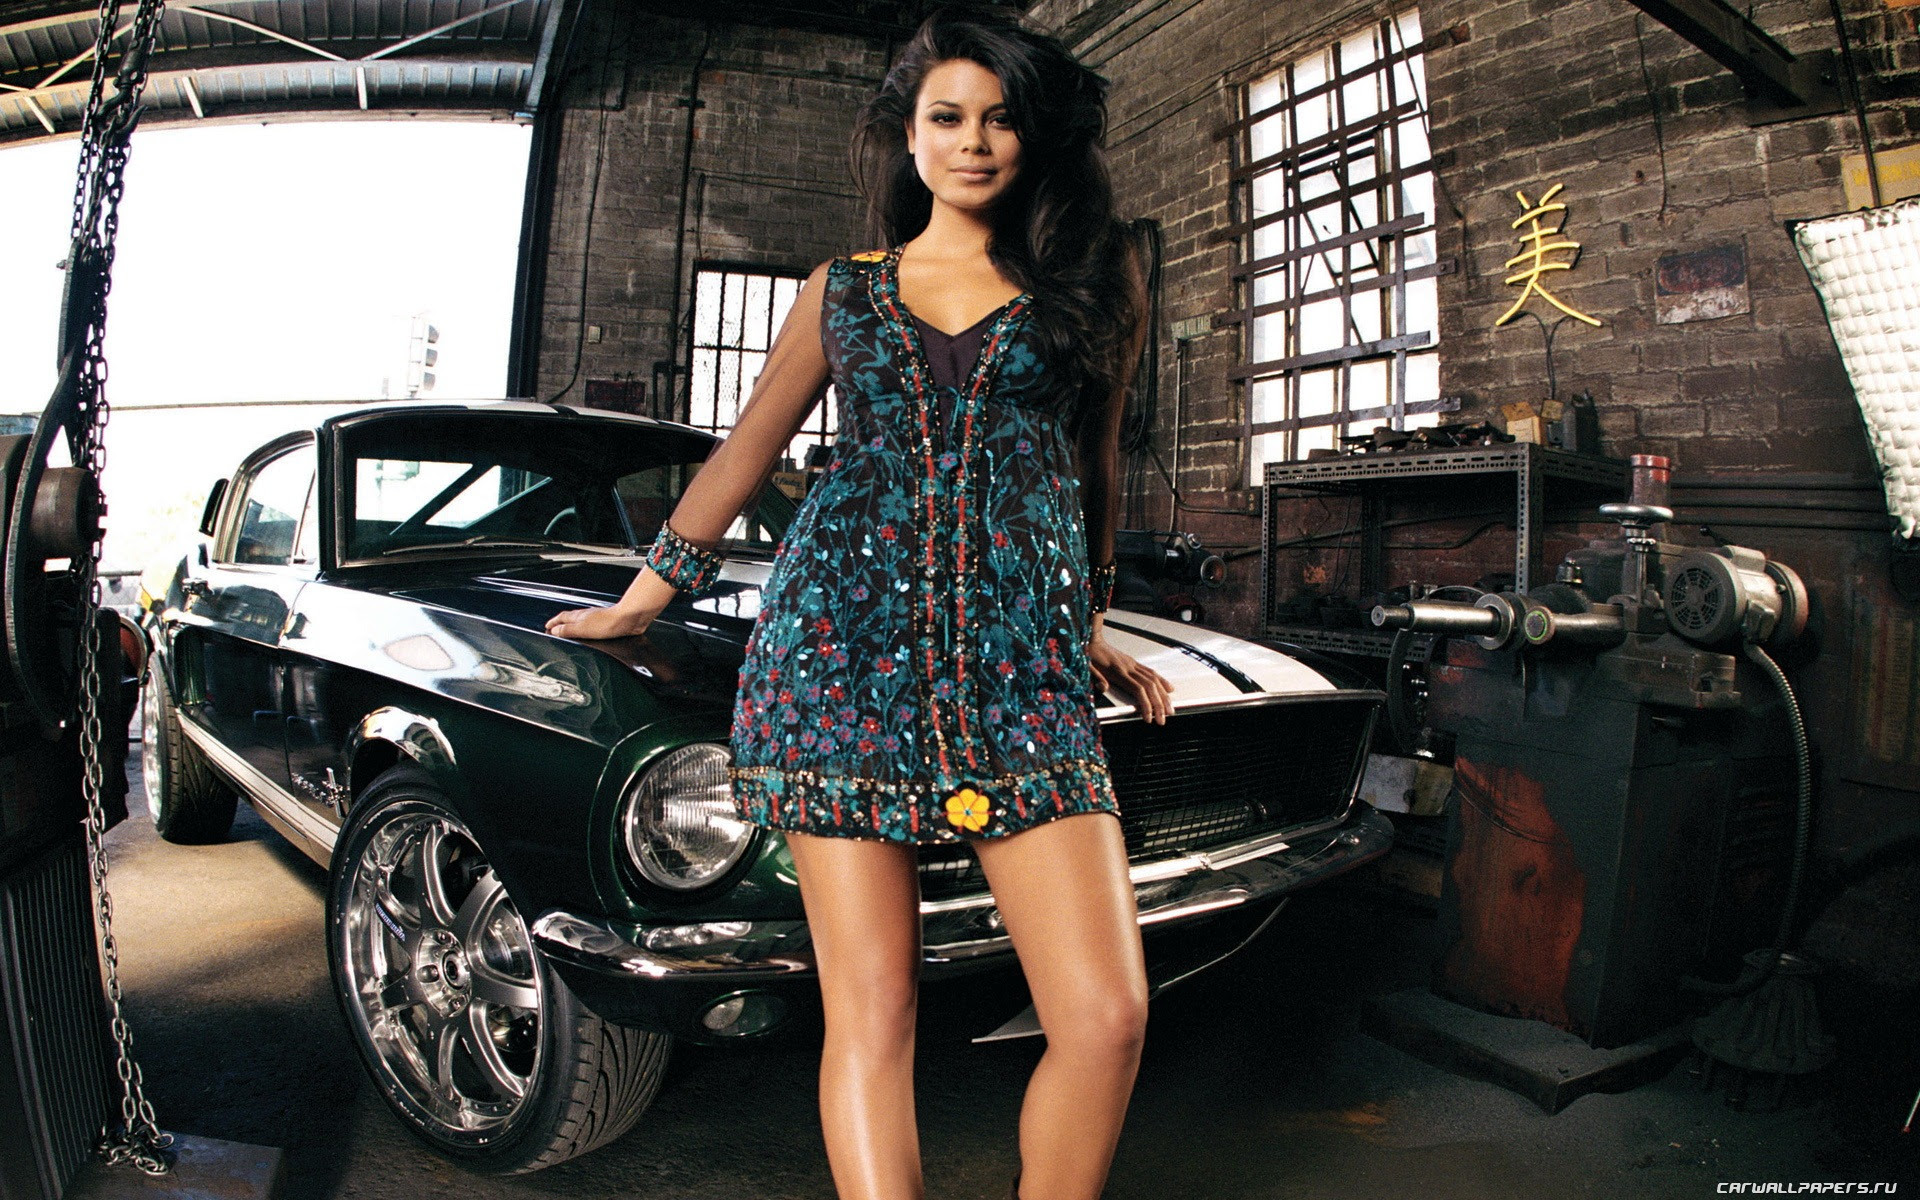 Sexy Girls And Cars Wallpaper Wallpapers Hd Wallpapers 89133